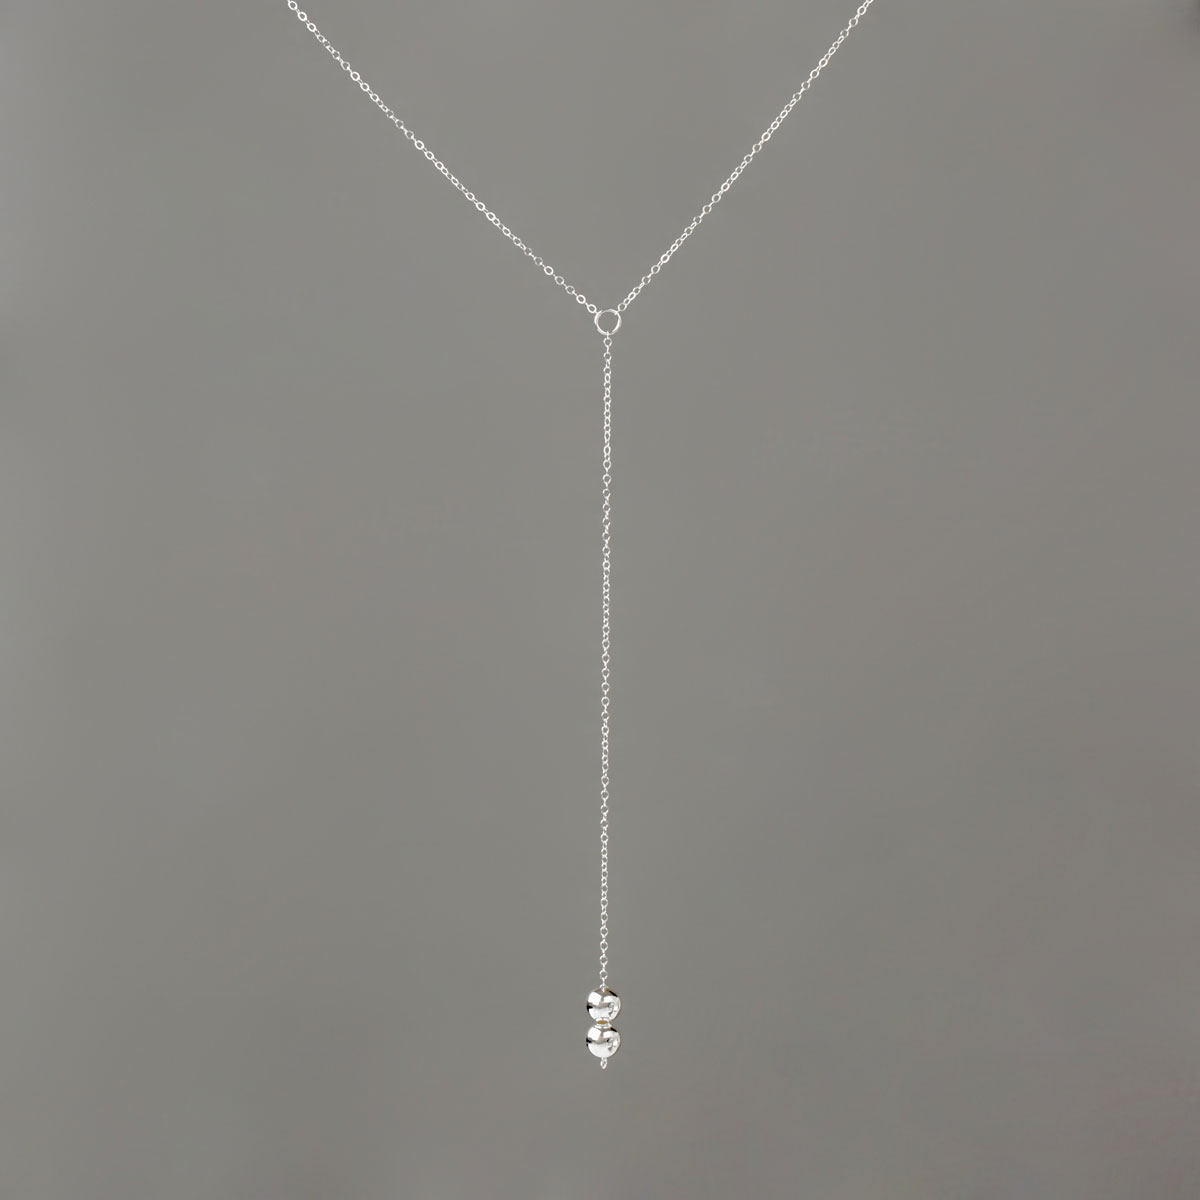 Long Y Necklace in Silver